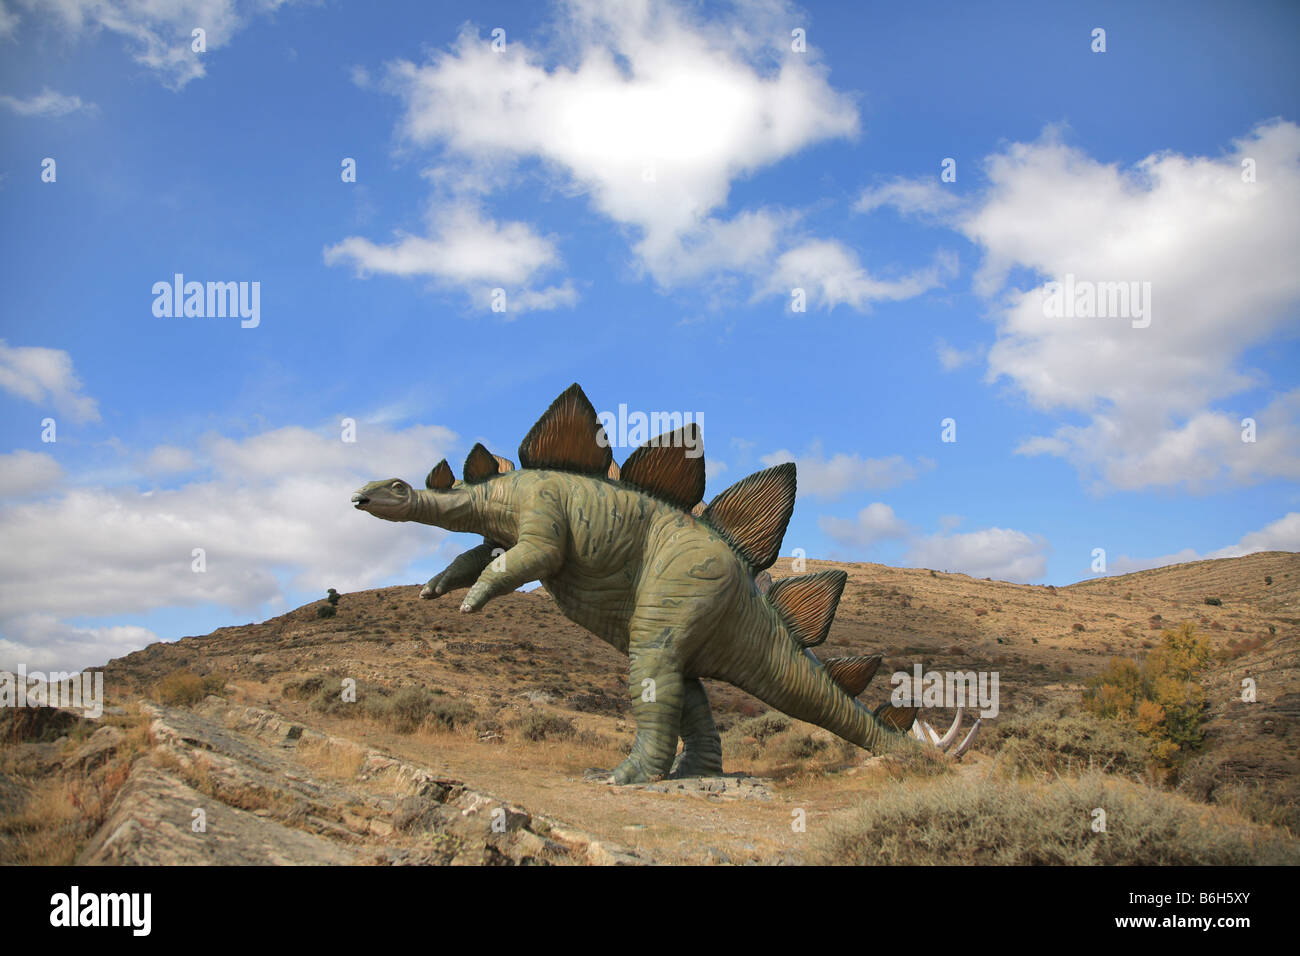 Dinosaurus in lower Rioja - Stock Image